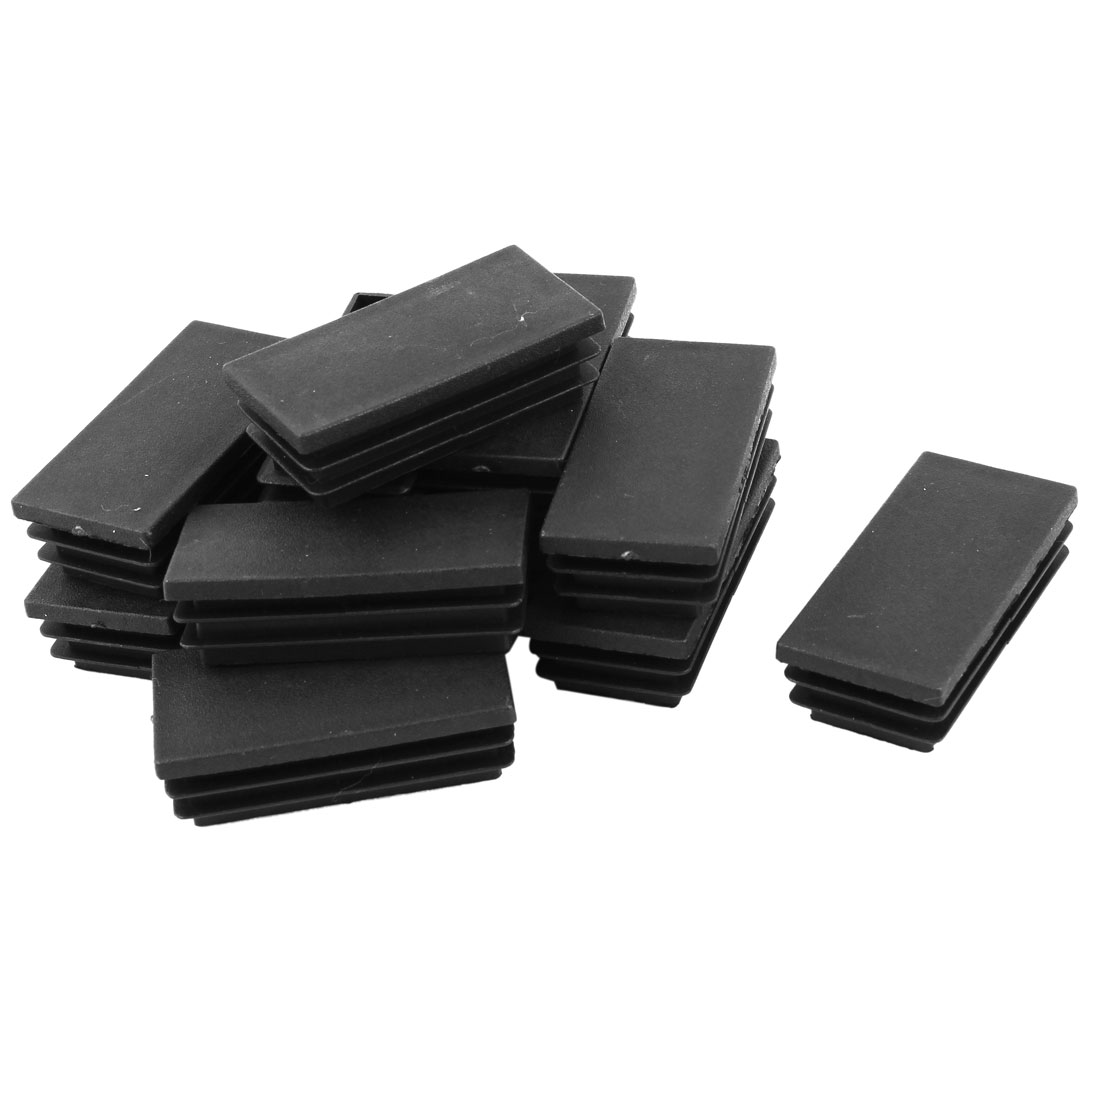 12 Pcs Black Plastic Rectangle Blanking End Caps Tubing Tube Inserts 30mm x 60mm